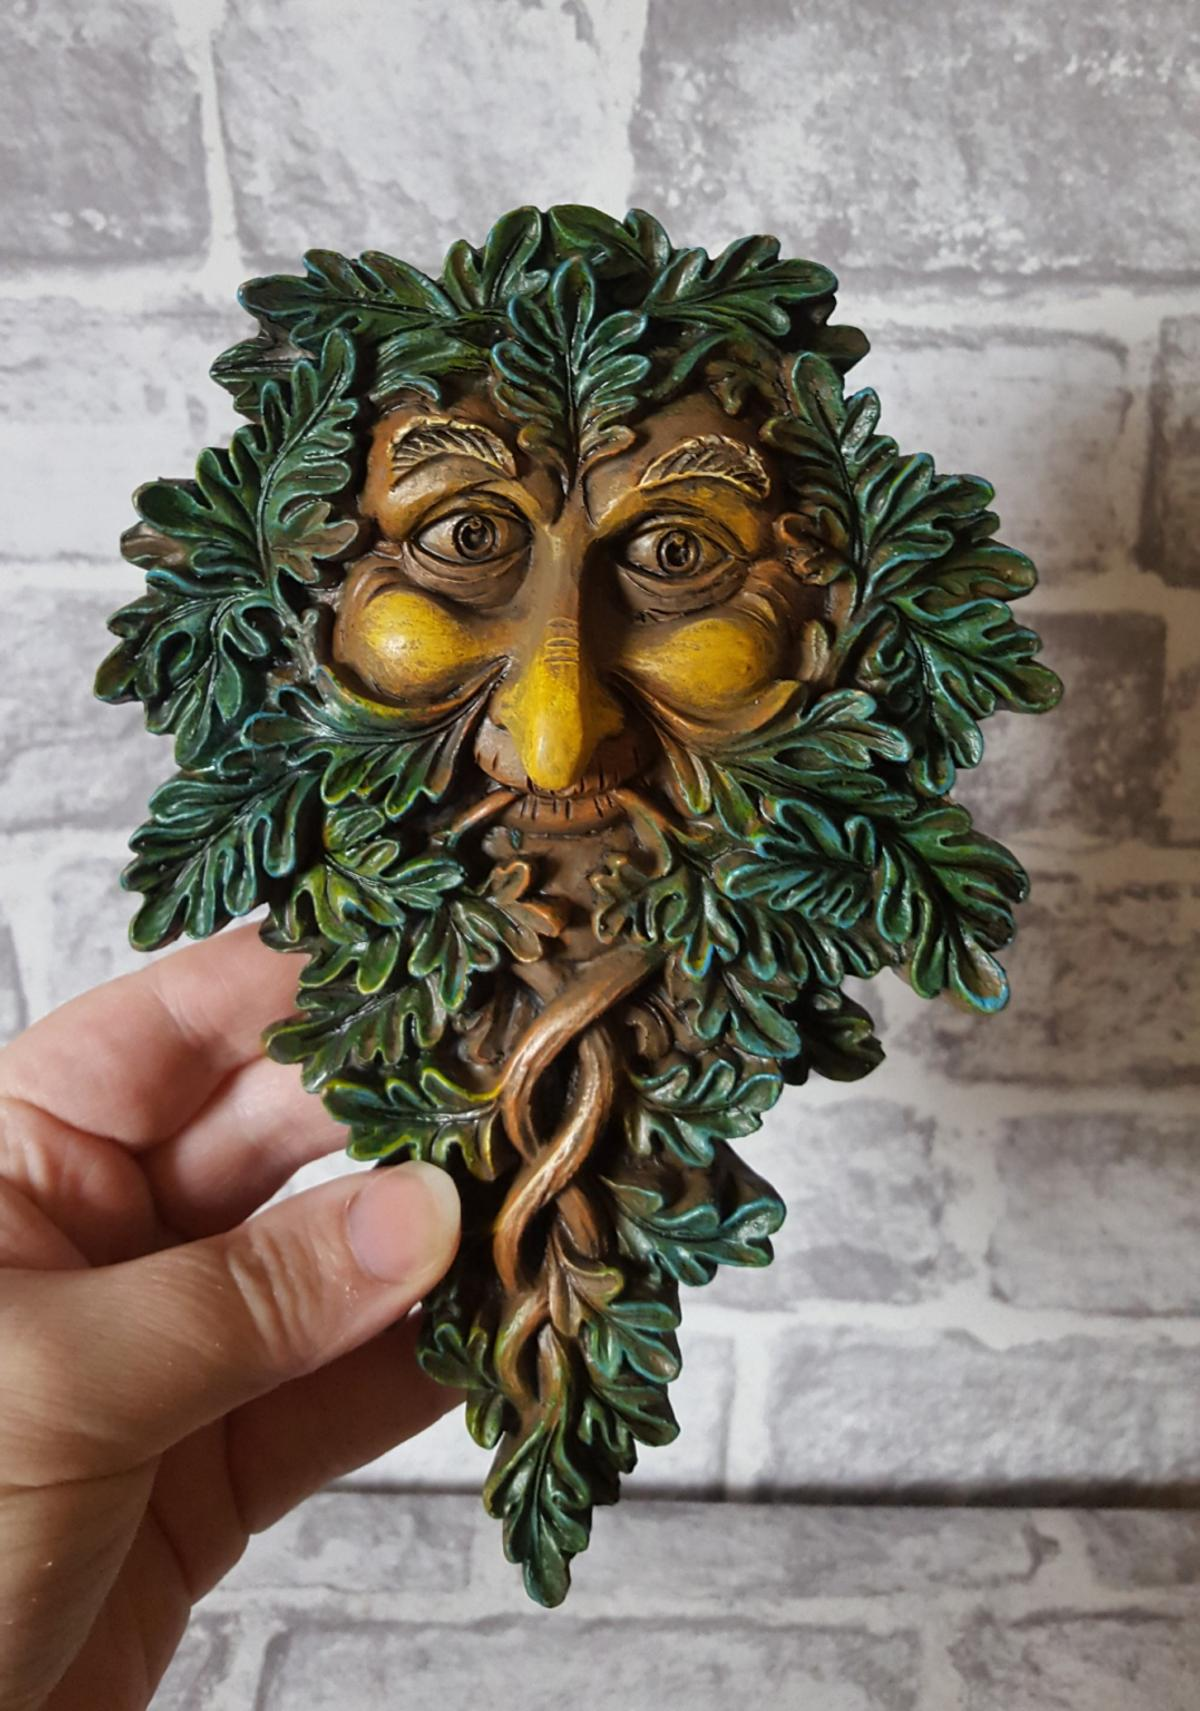 Beautifully crafted Tree Spirit Green man Wall Plaque 🌳🍃🌱  Painstakingly hand-painted 🌳  Size 19.5cm  £11 Collection (B37) £14 Includes UK p&p  BRAND NEW IN BOX WILL NOT KEEP ON HOLD NO OFFERS